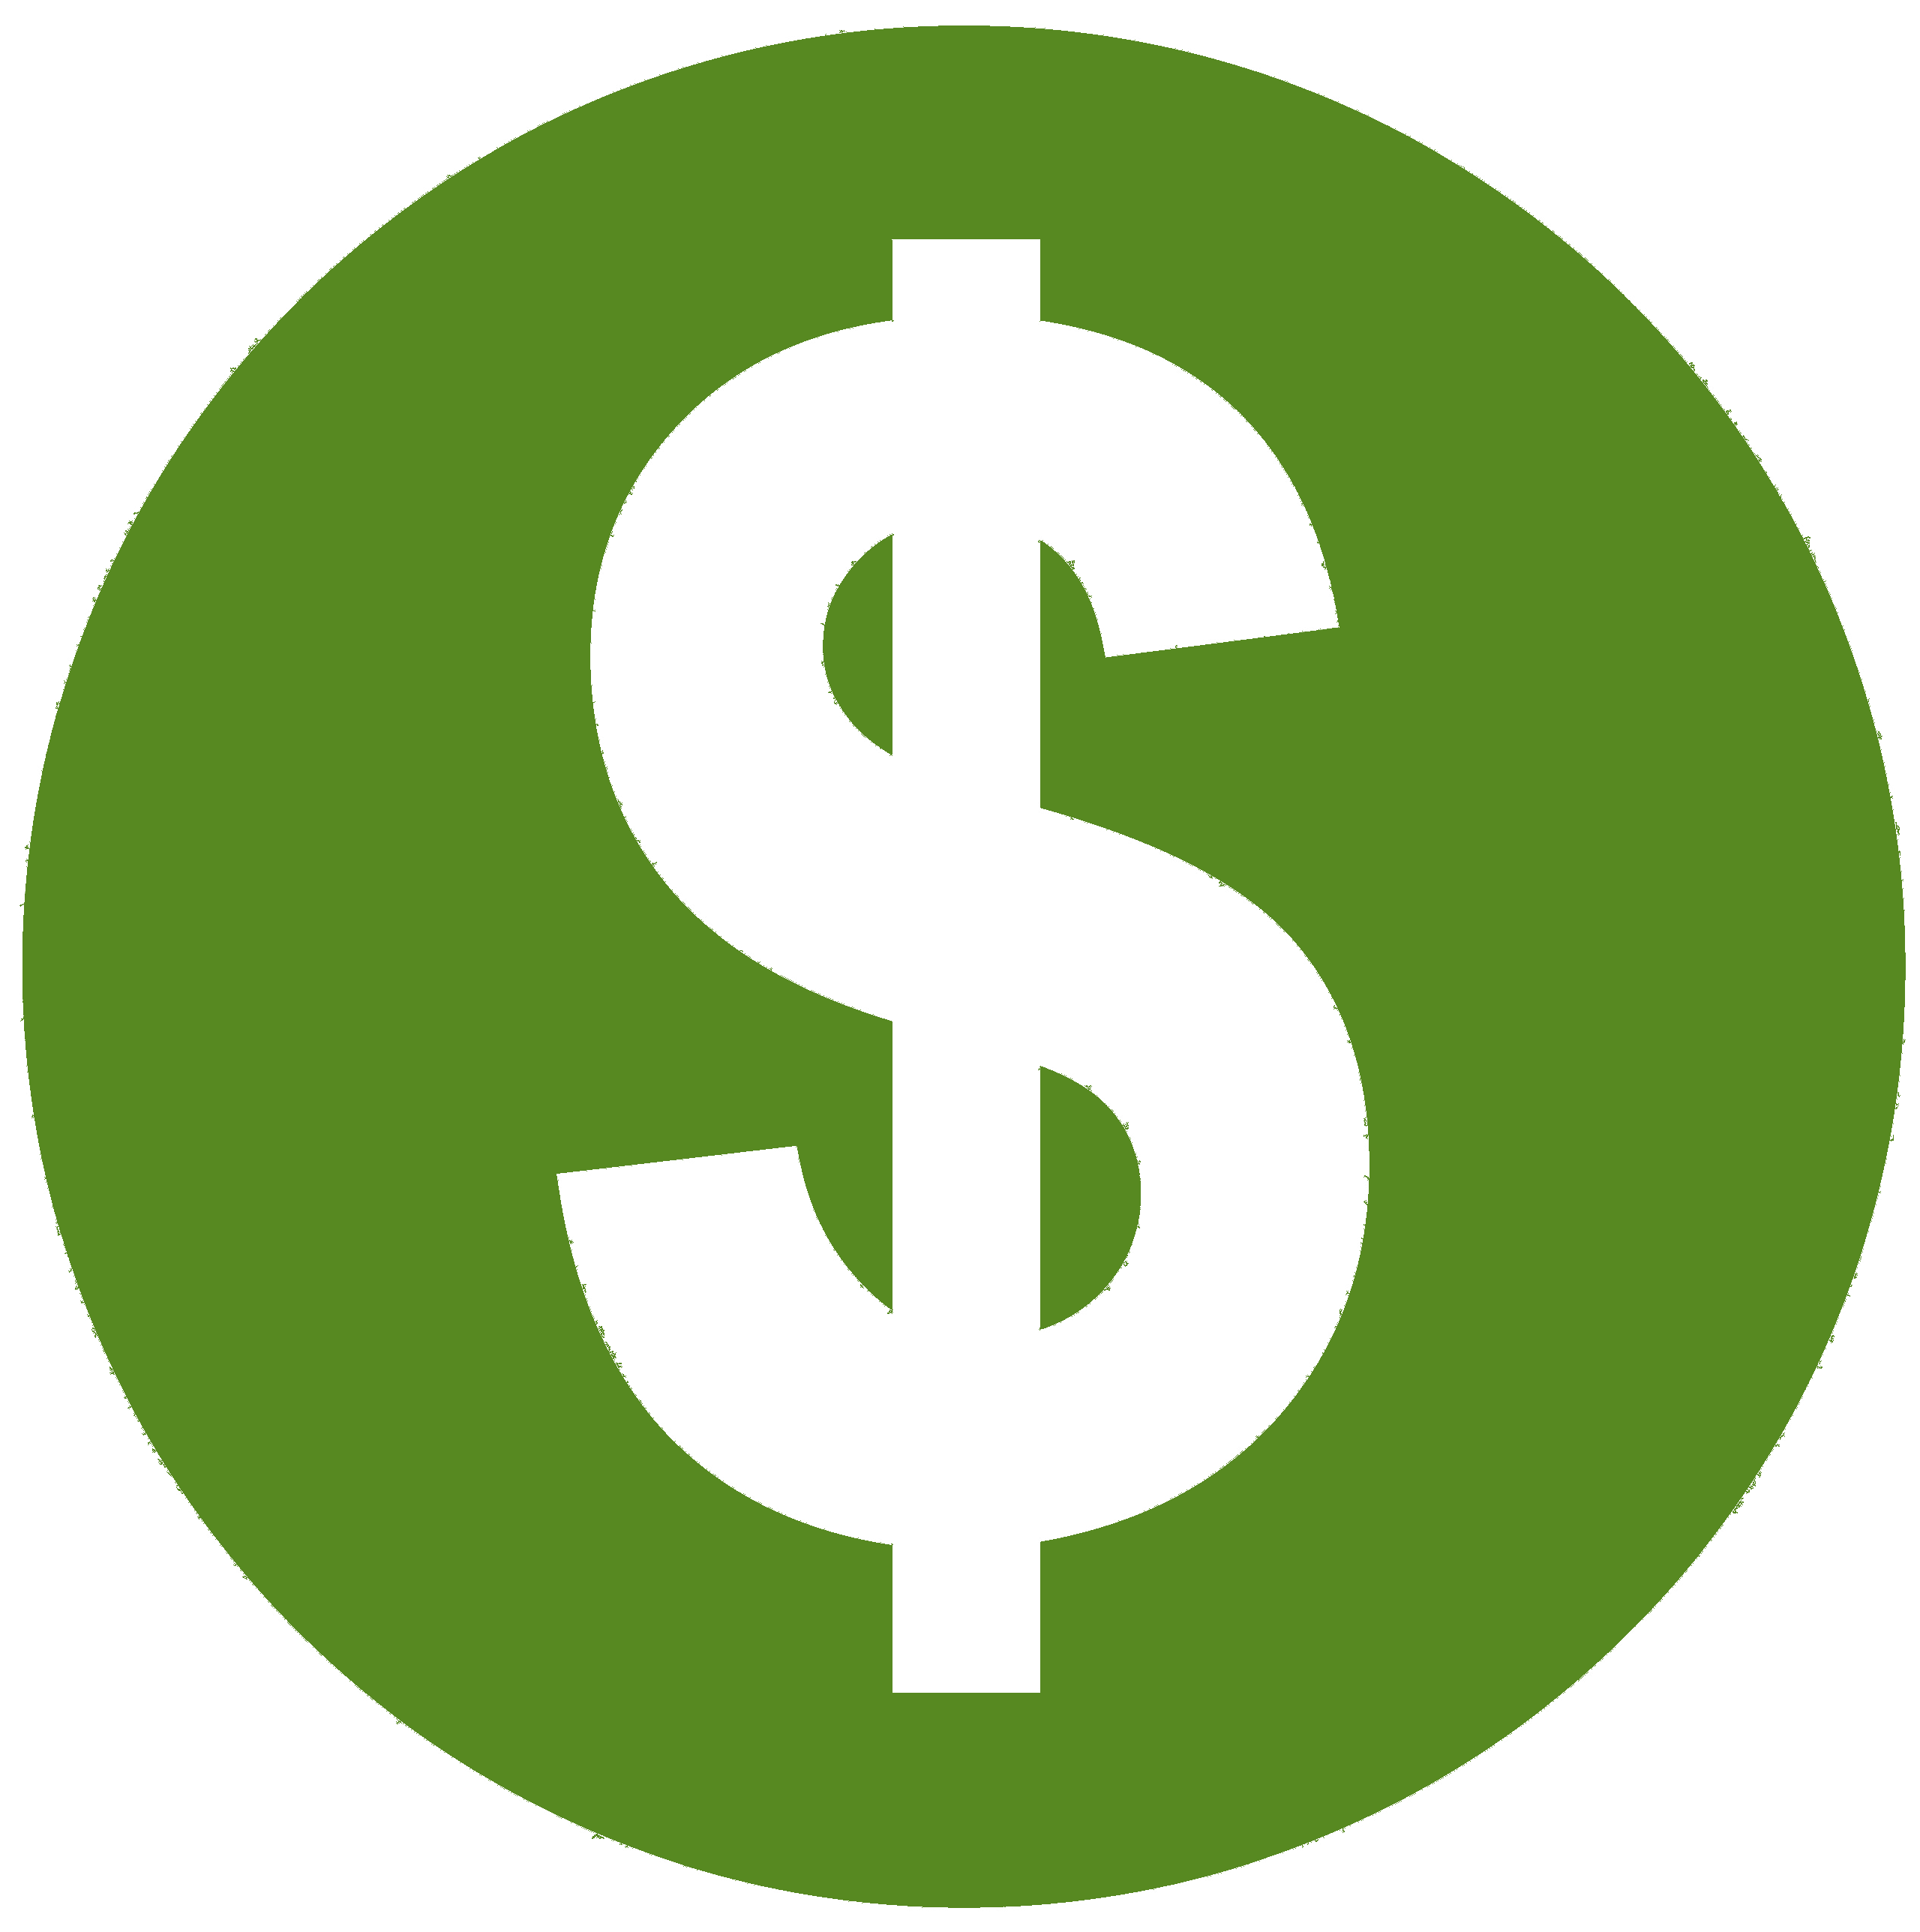 Video production services green dollar sign icon